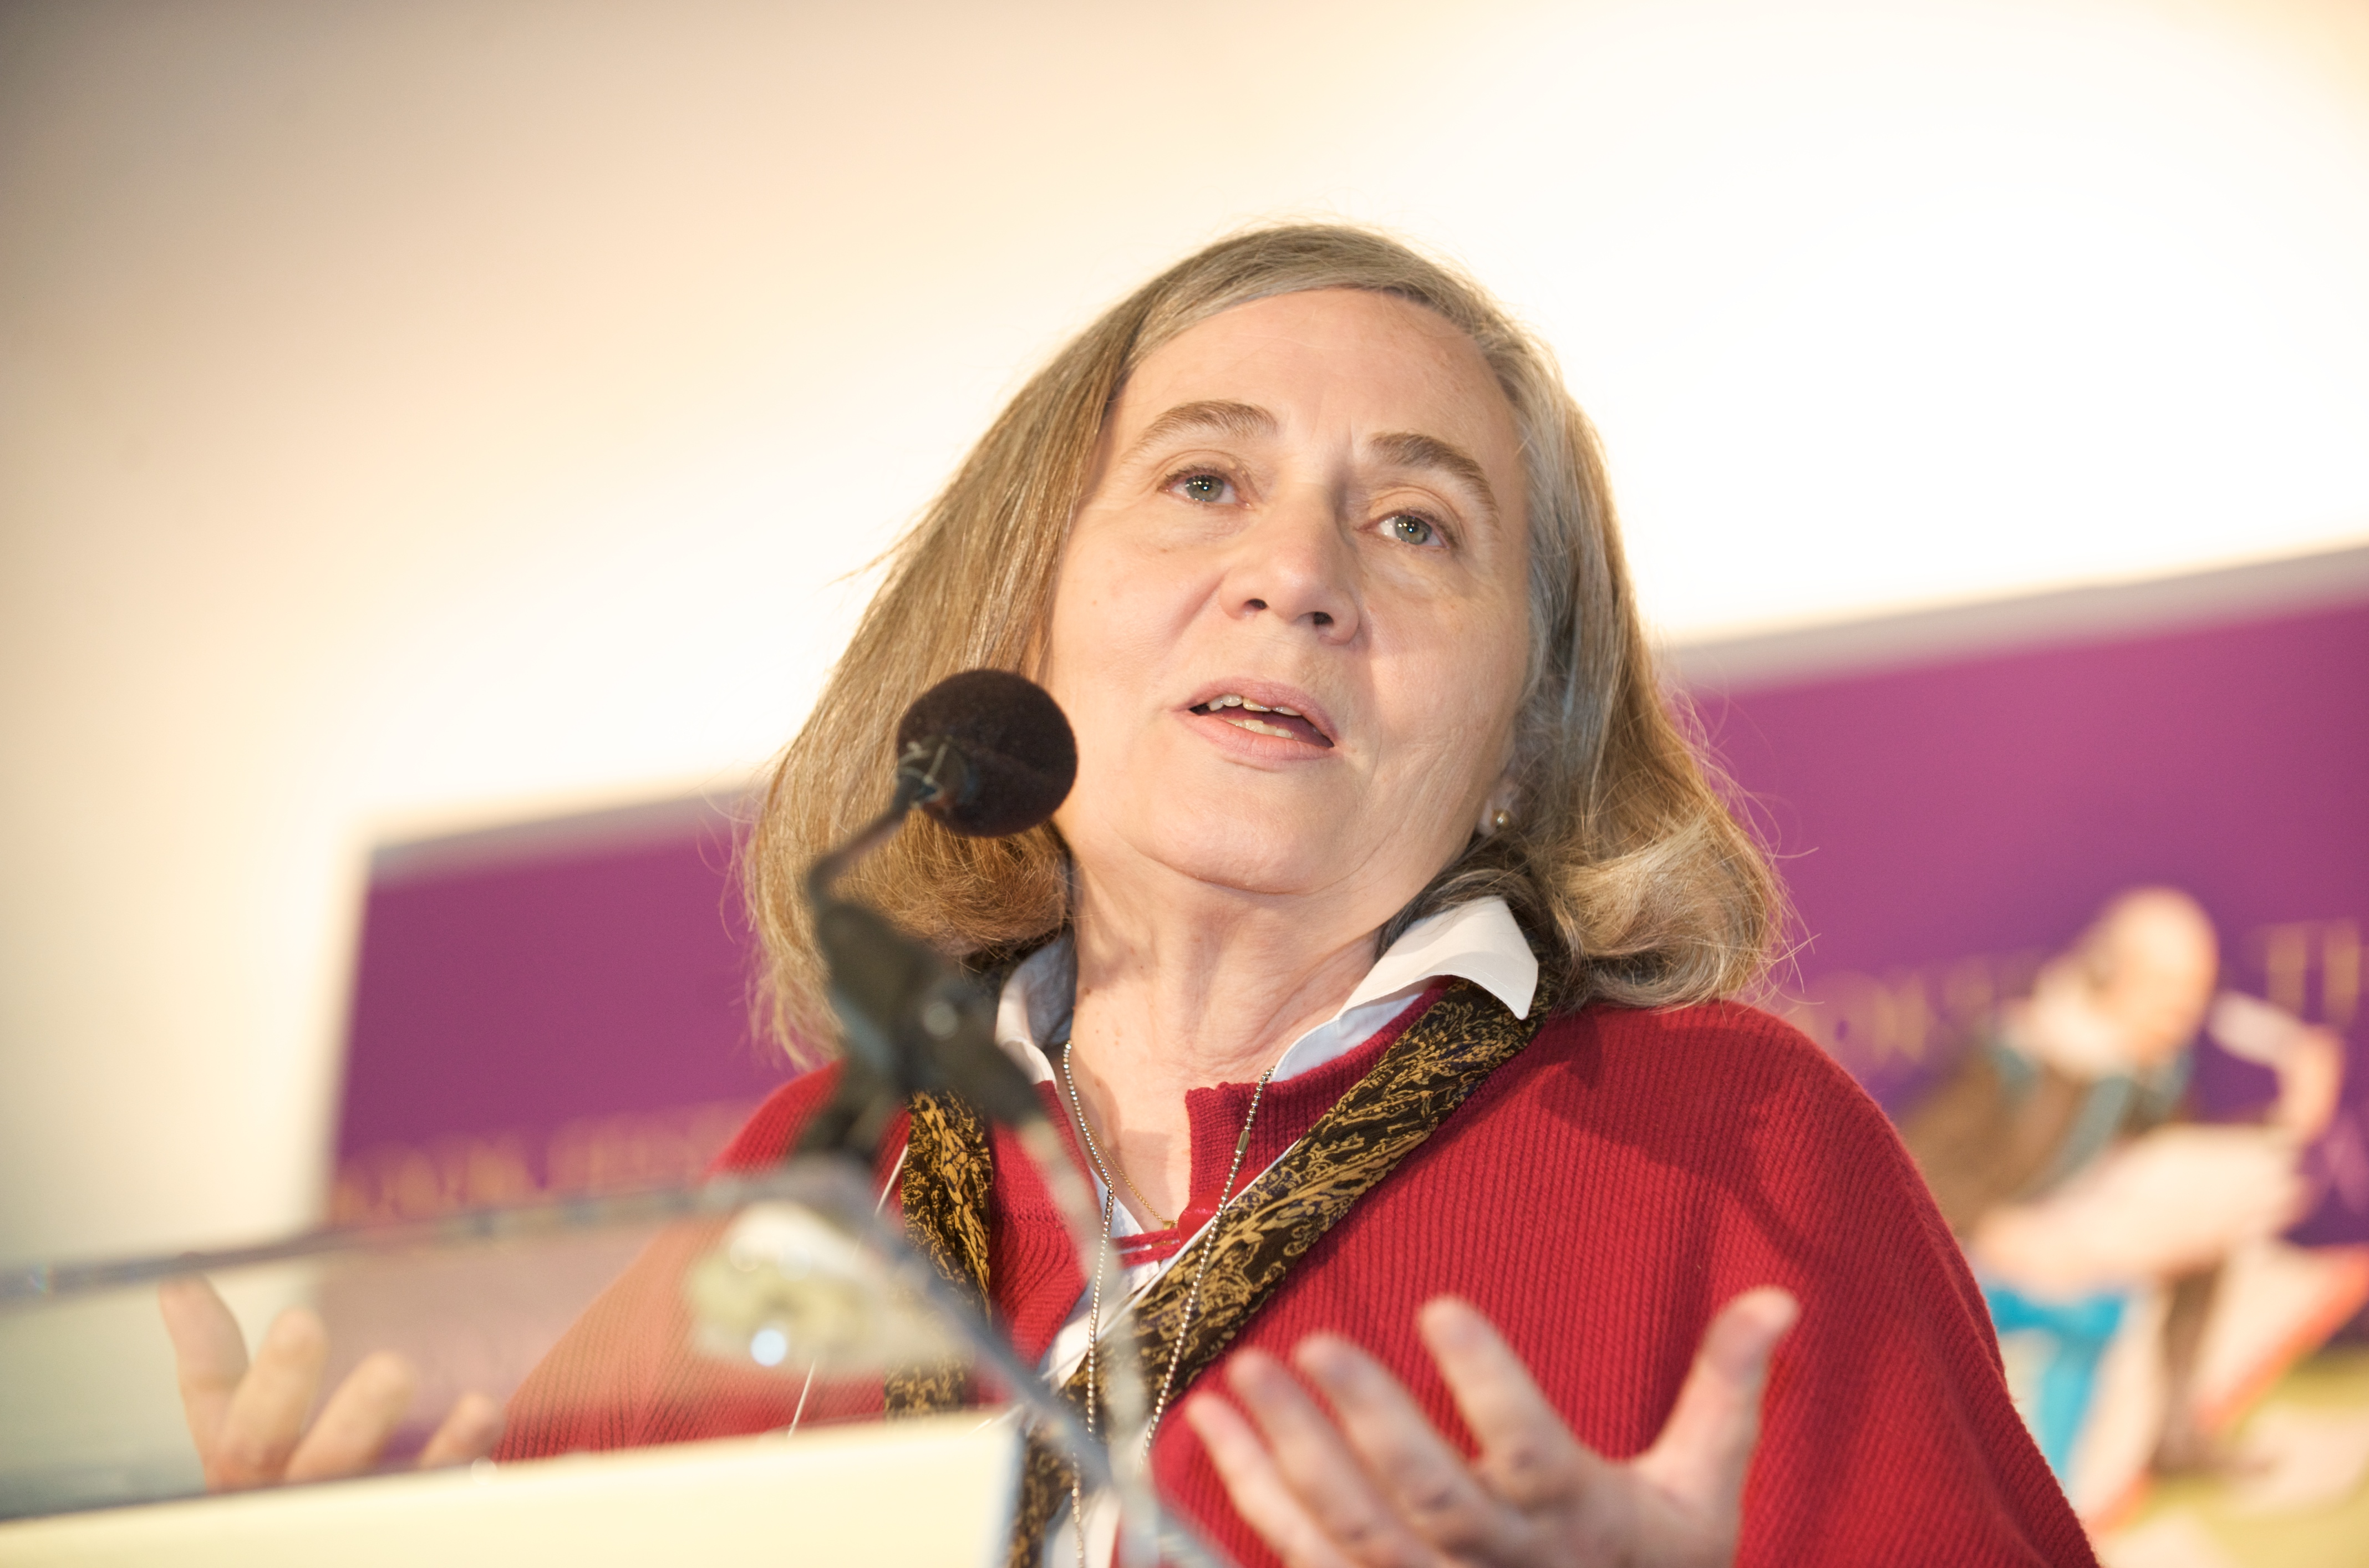 Marilynne Robinson speaking into a mic on stage.